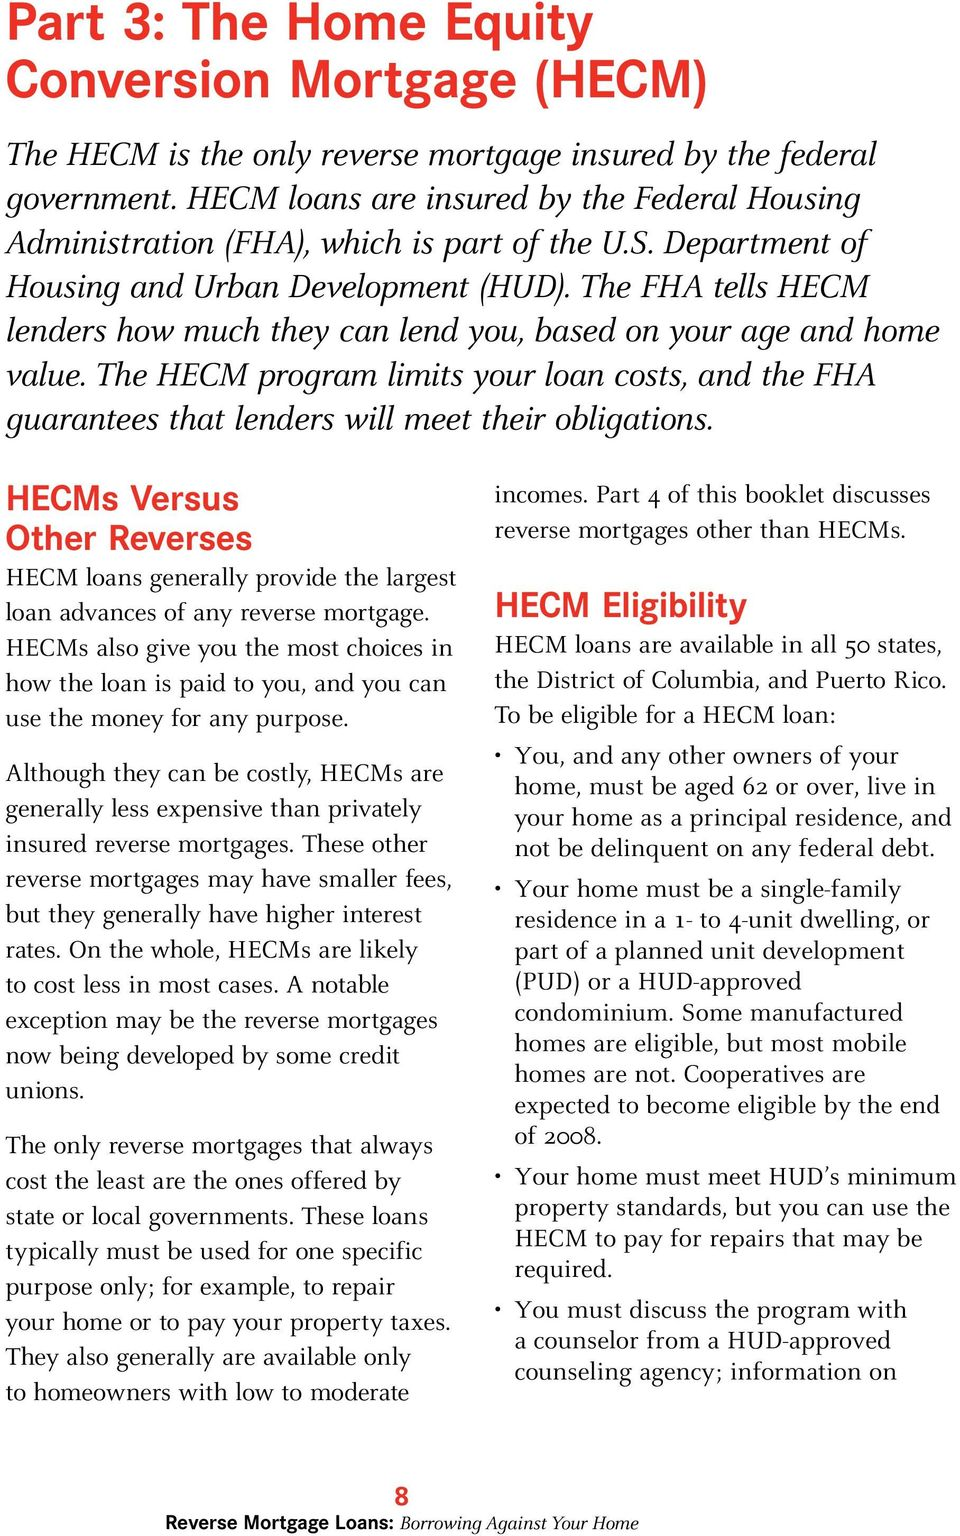 The FHA tells HECM lenders how much they can lend you, based on your age and home value. The HECM program limits your loan costs, and the FHA guarantees that lenders will meet their obligations.